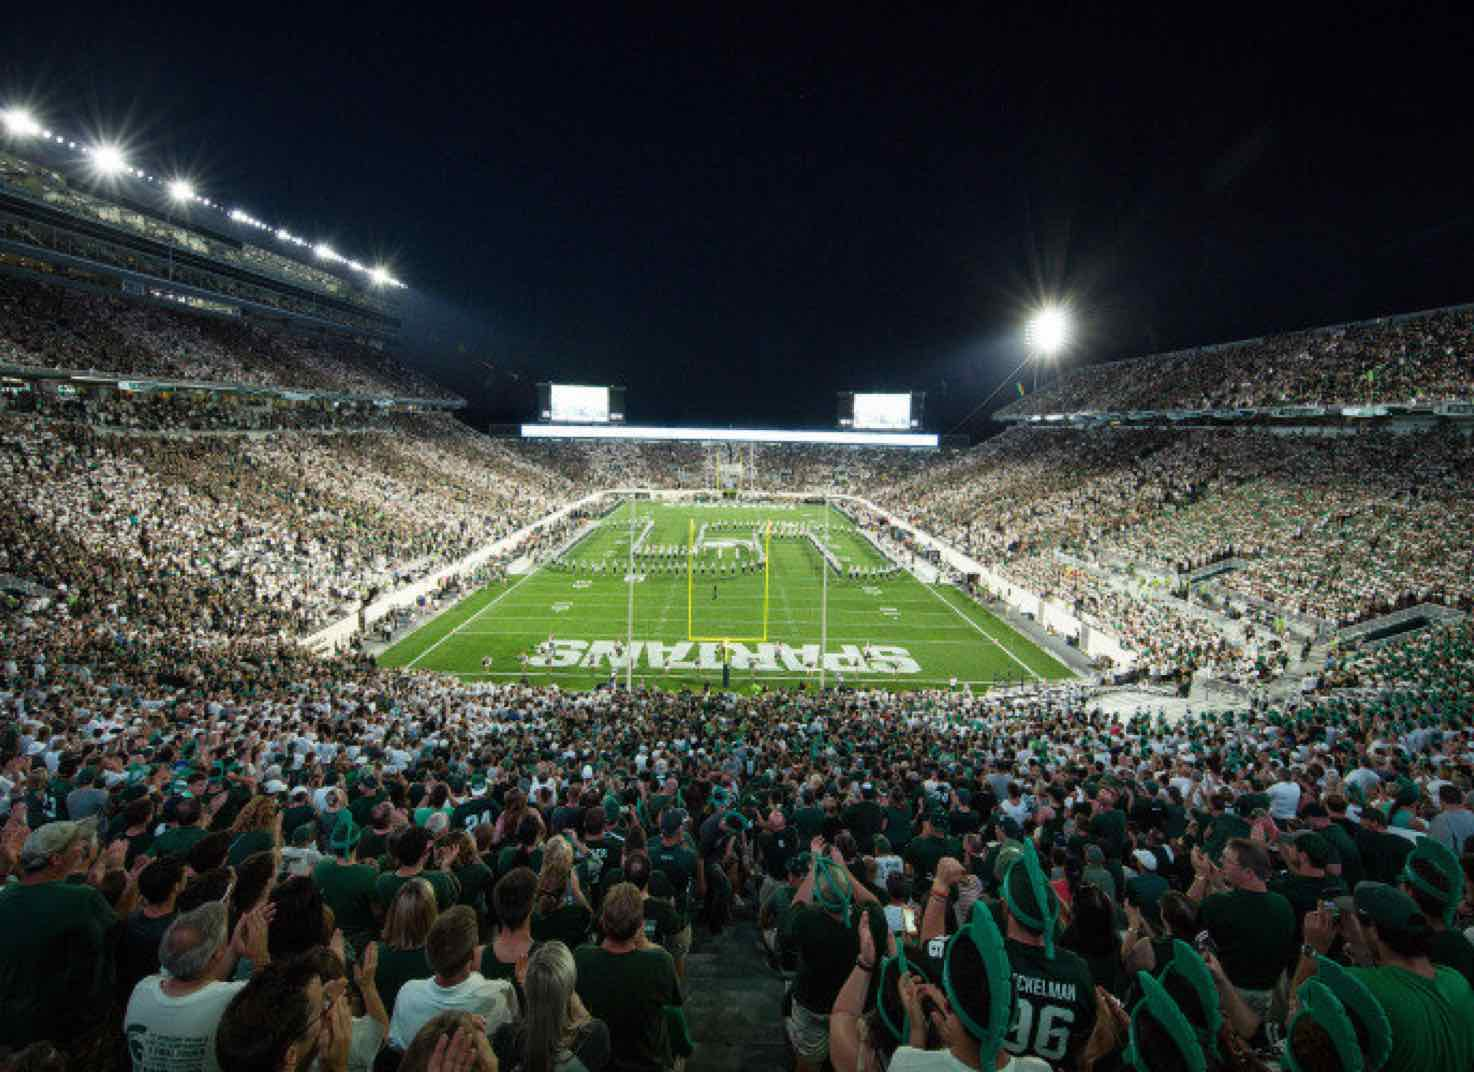 Spartan Stadium at night